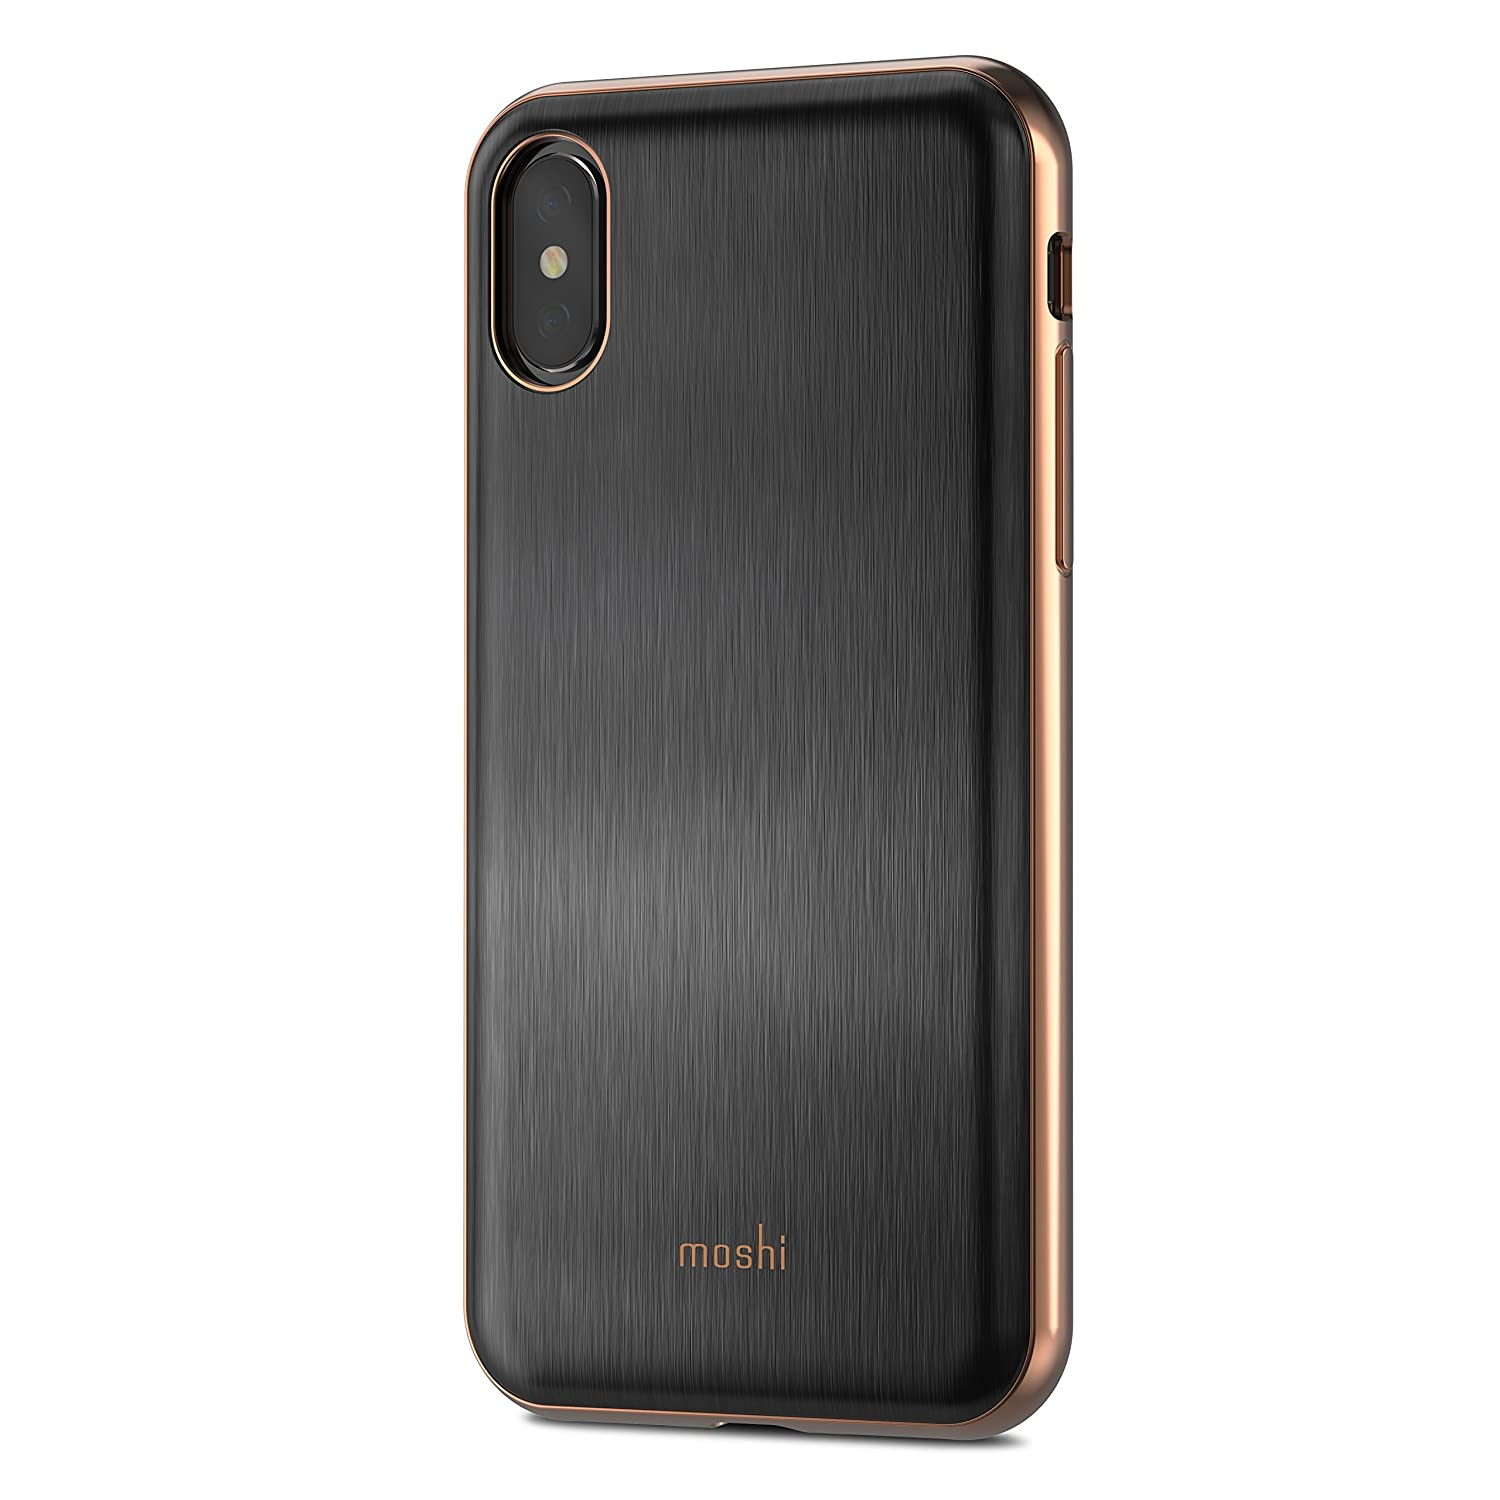 Moshi iGlaze Stylish Slim Fit Lightweight Snap-On hybrid Drop Protection for iPhone X (Black)